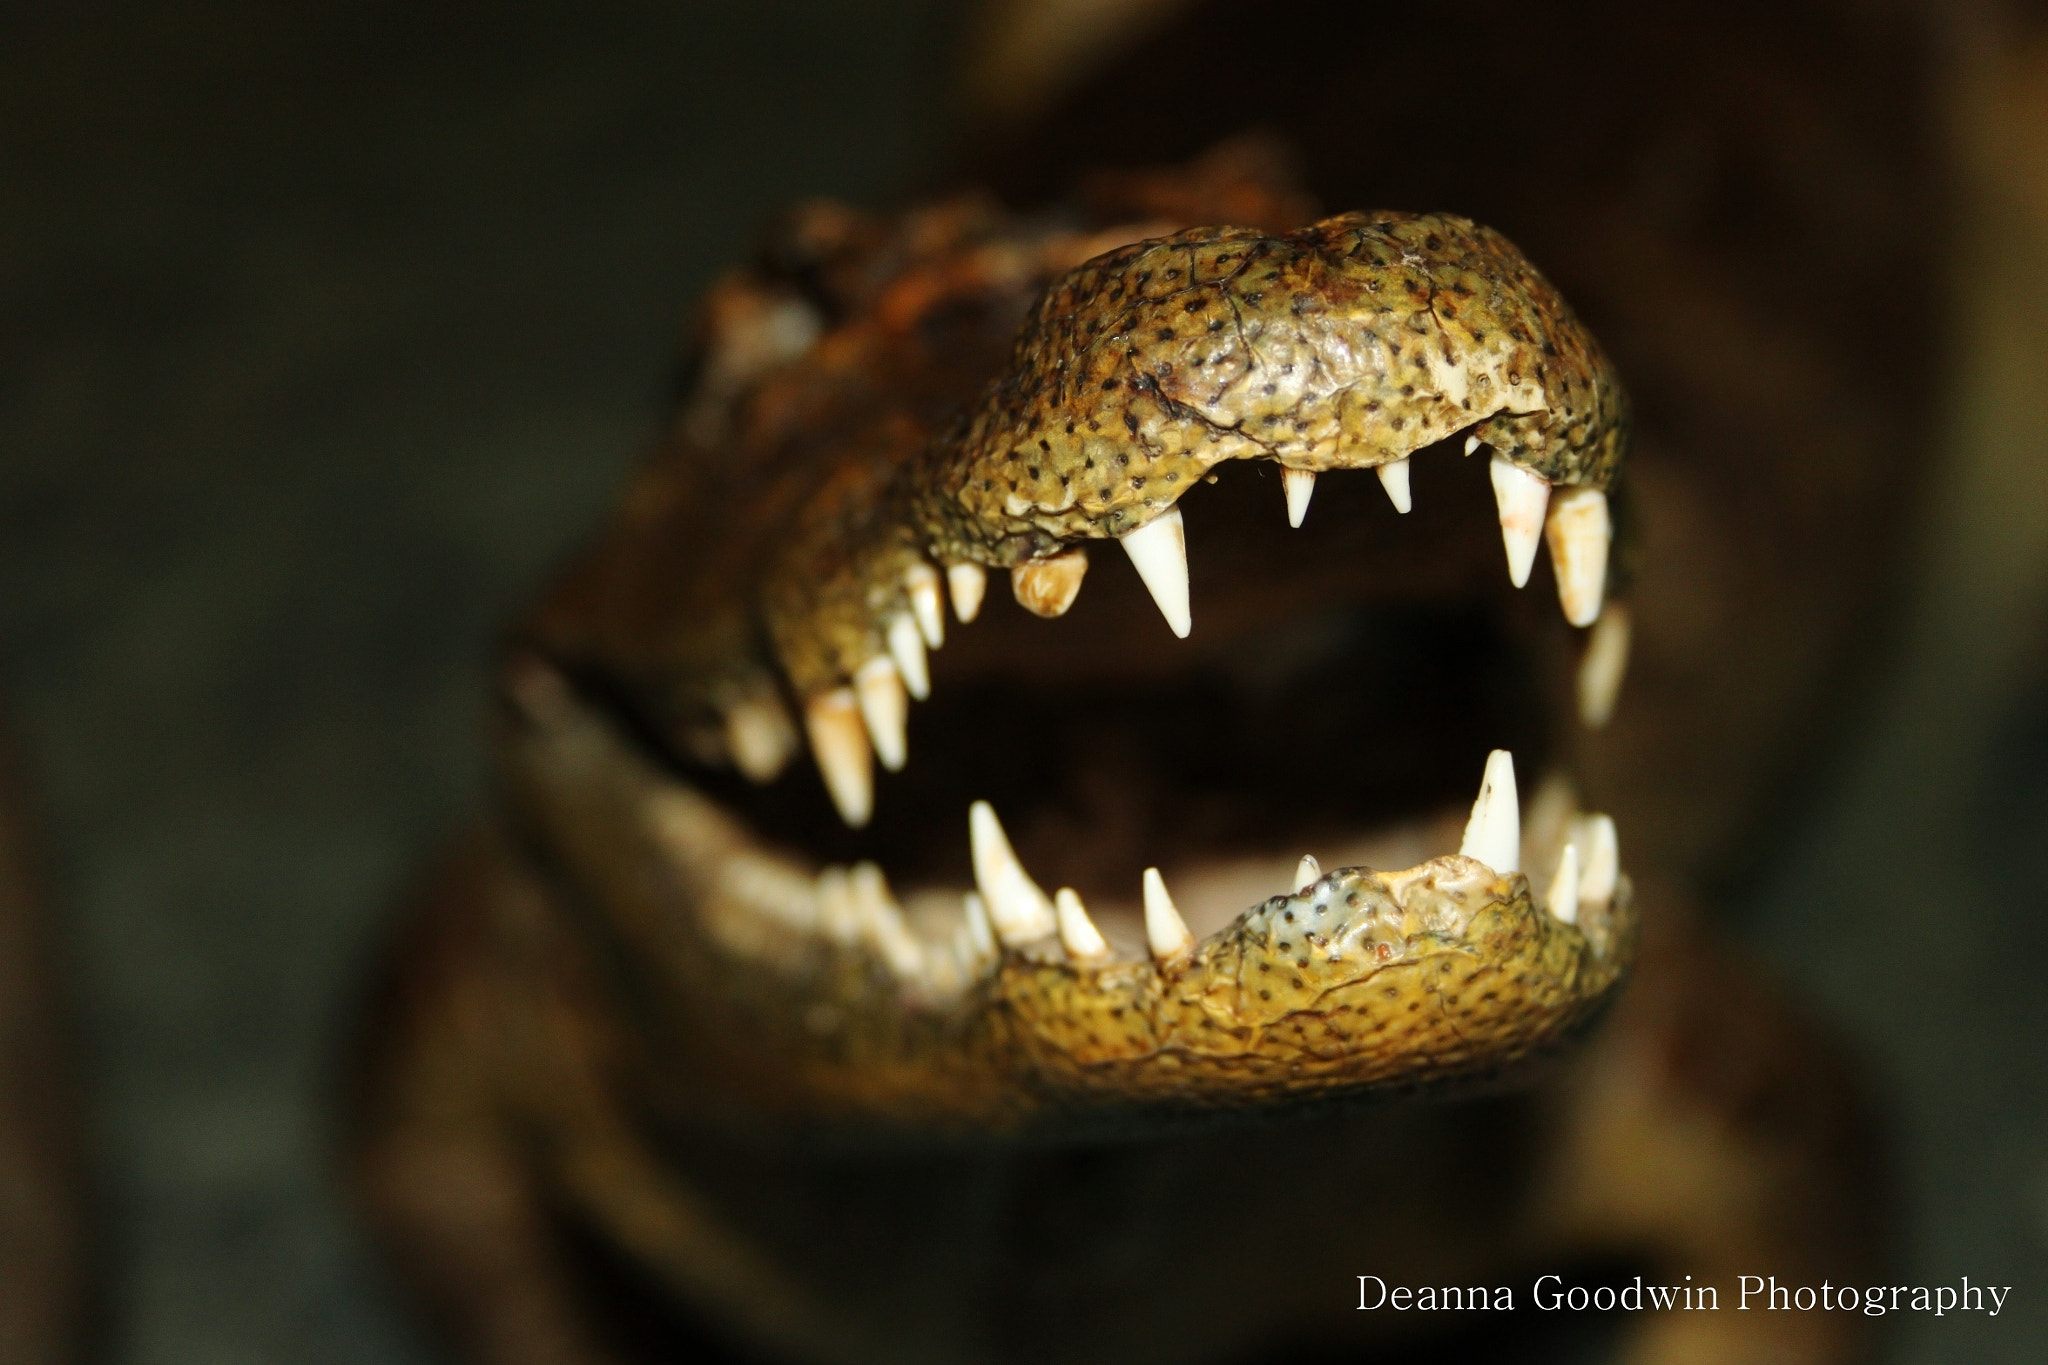 Photograph Anything in my teeth? by Deanna Goodwin on 500px